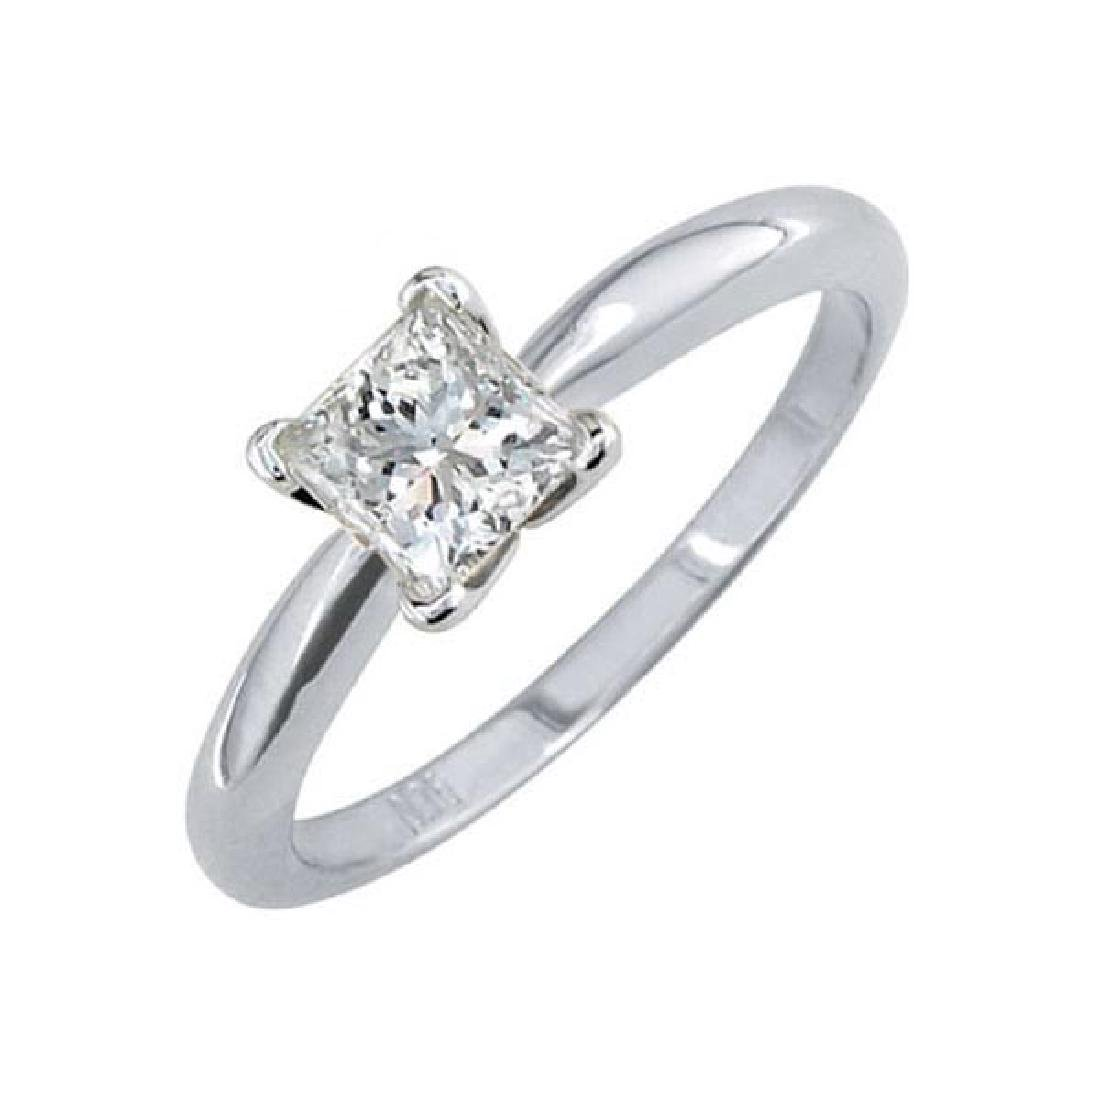 Certified 1 CTW Princess Diamond Solitaire 14k Ring I/S